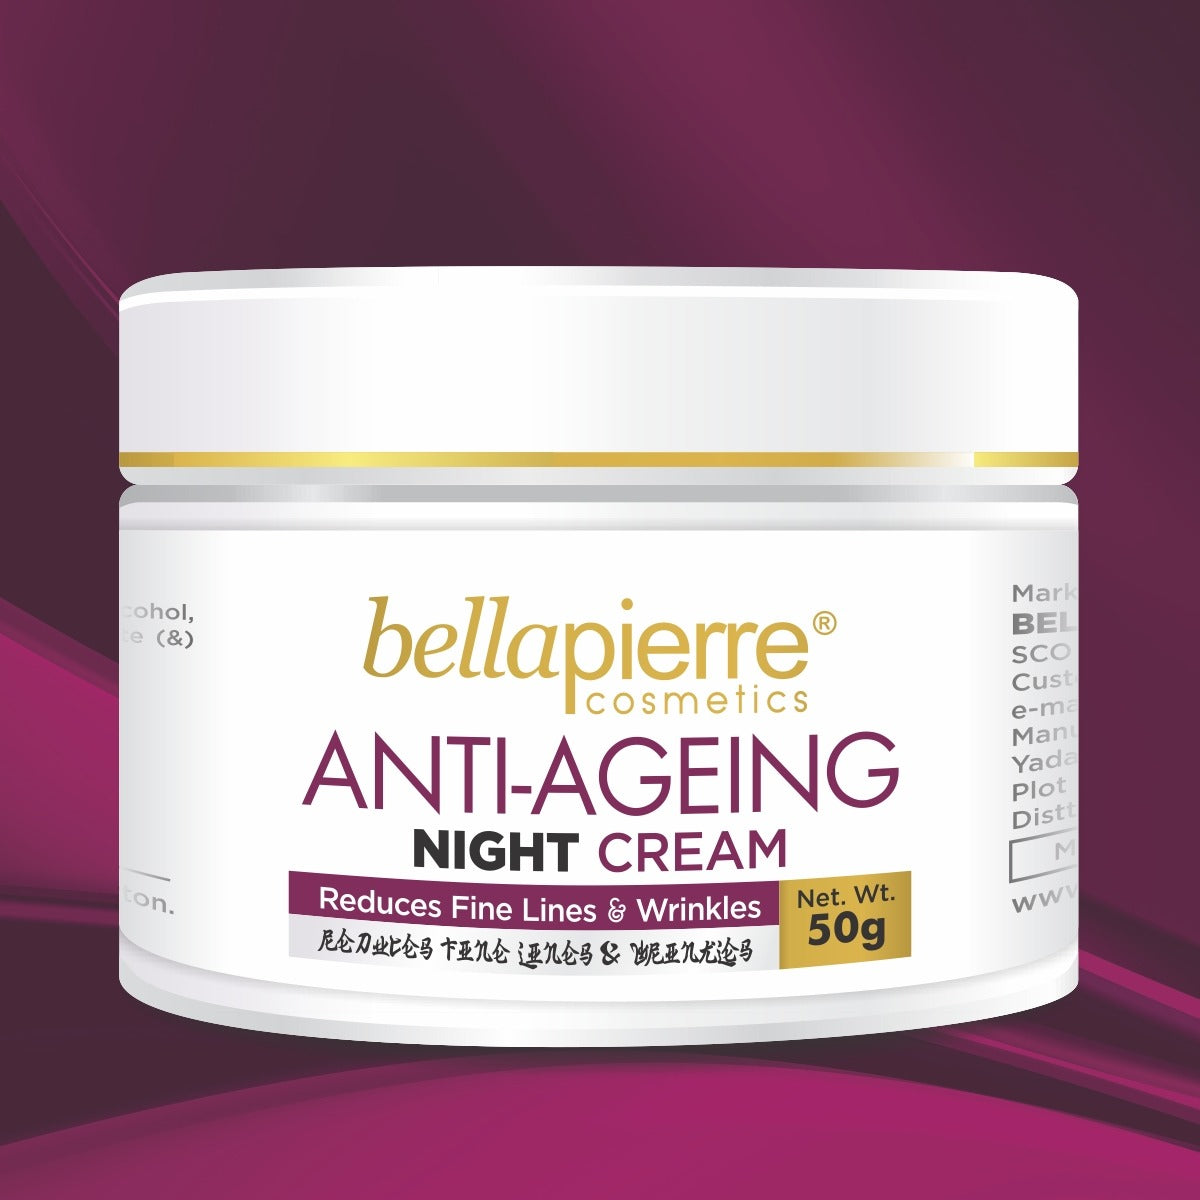 Bellapierre Antiageing Night Cream Helps Reduces Fine Lines & Wrinkles 50Gms